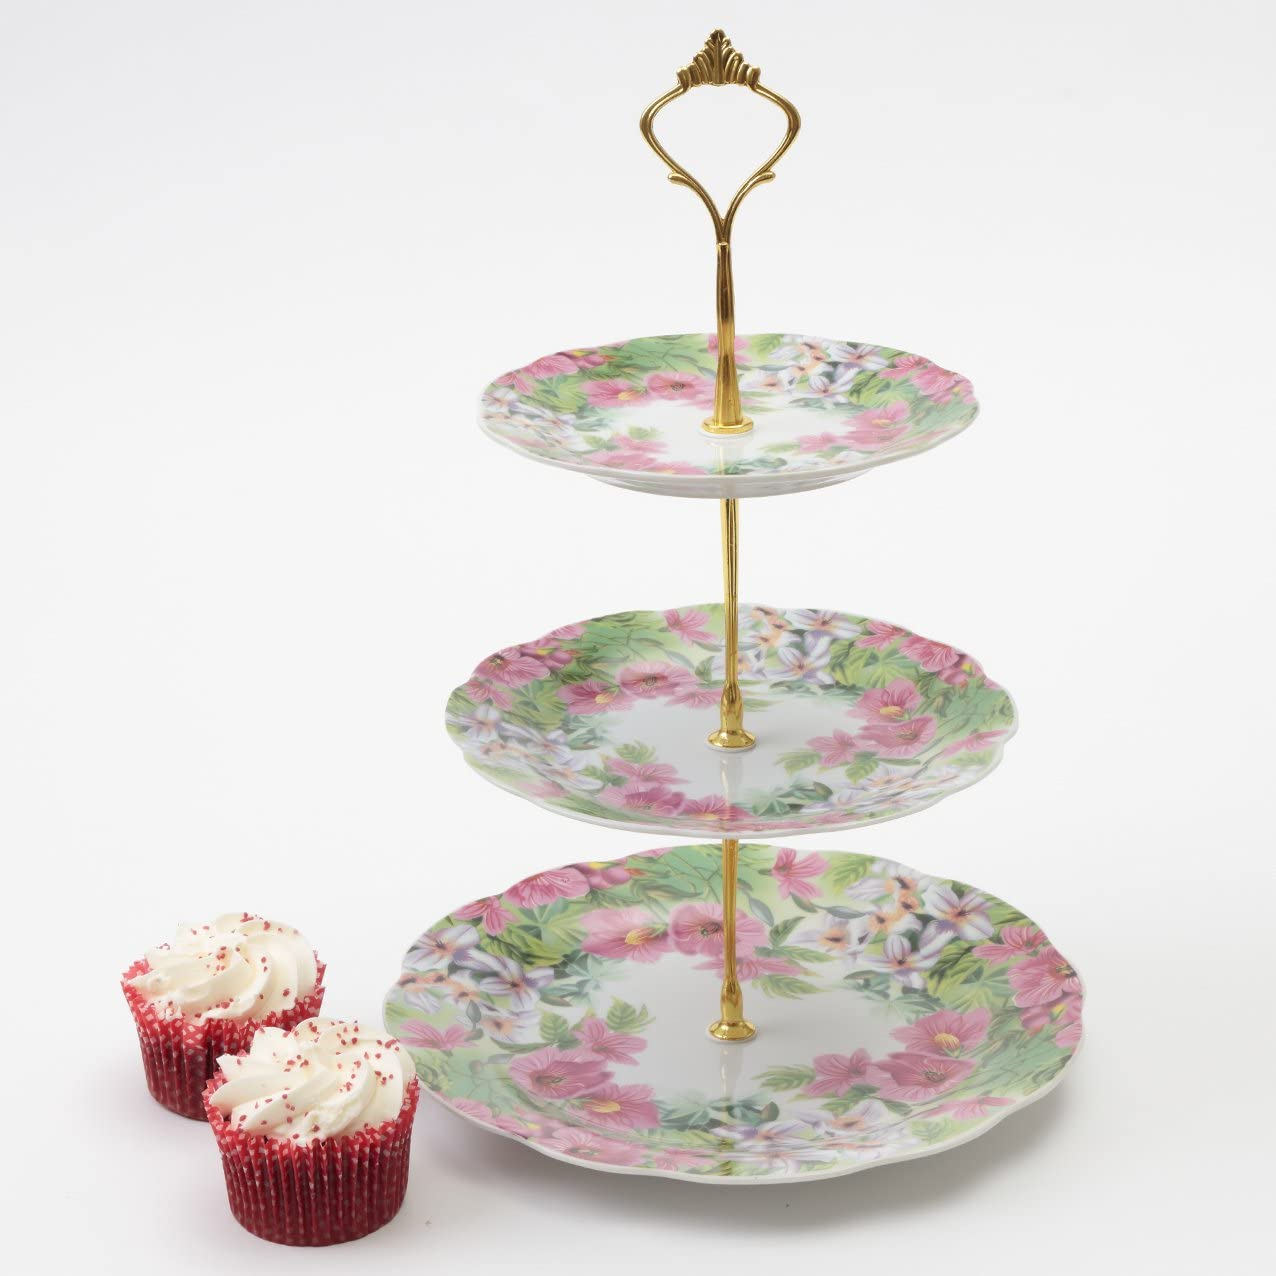 Vintage 3 Tier Floral Ceramic Cake Display Stand Sponges Sandwiches Cup Cakes Round Serving Plate Flowers